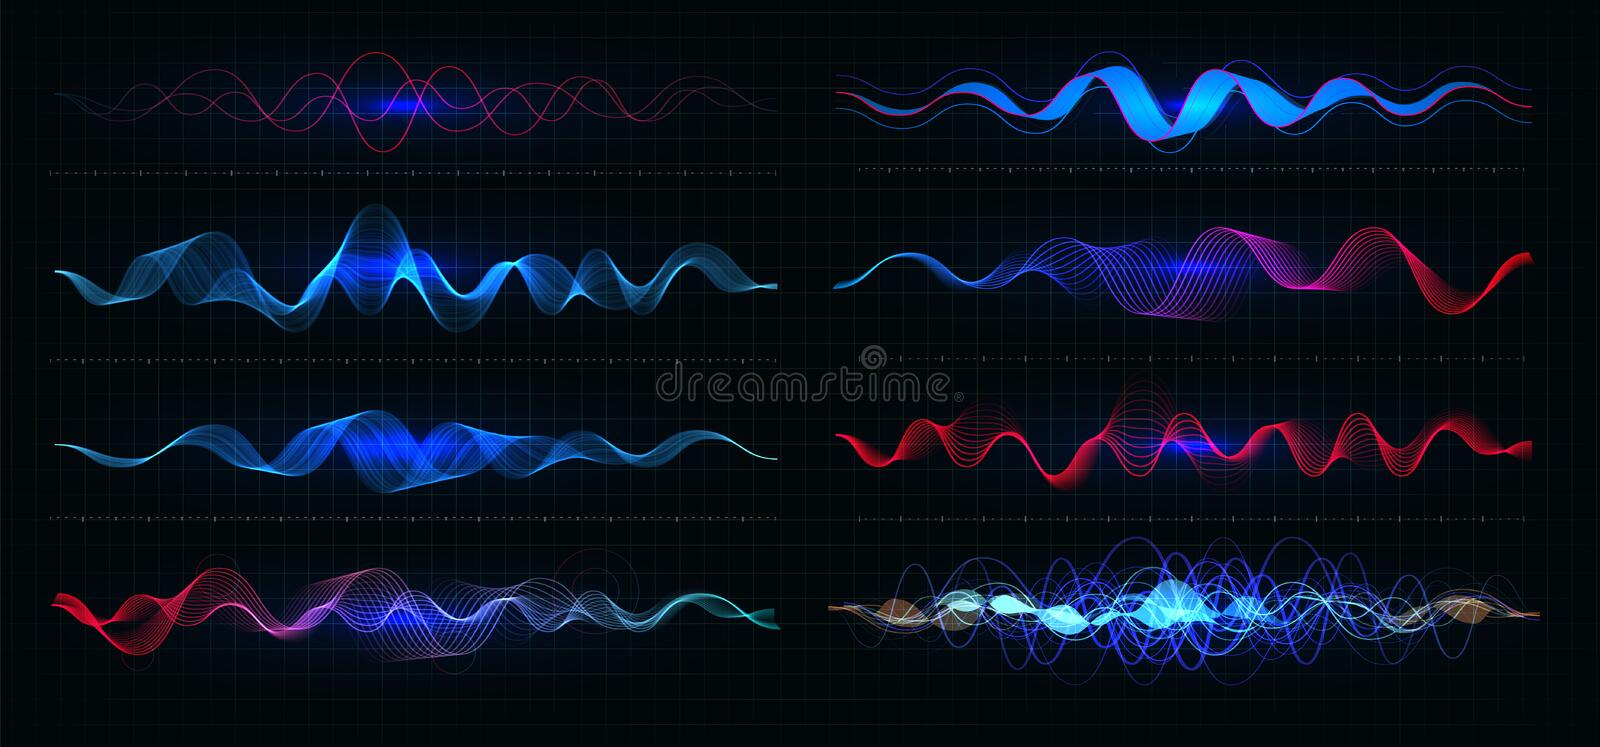 Equalizer vector illustration. Pulsation color wavy motion lines on black background. Radio frequency graph. Graphic stock illustration